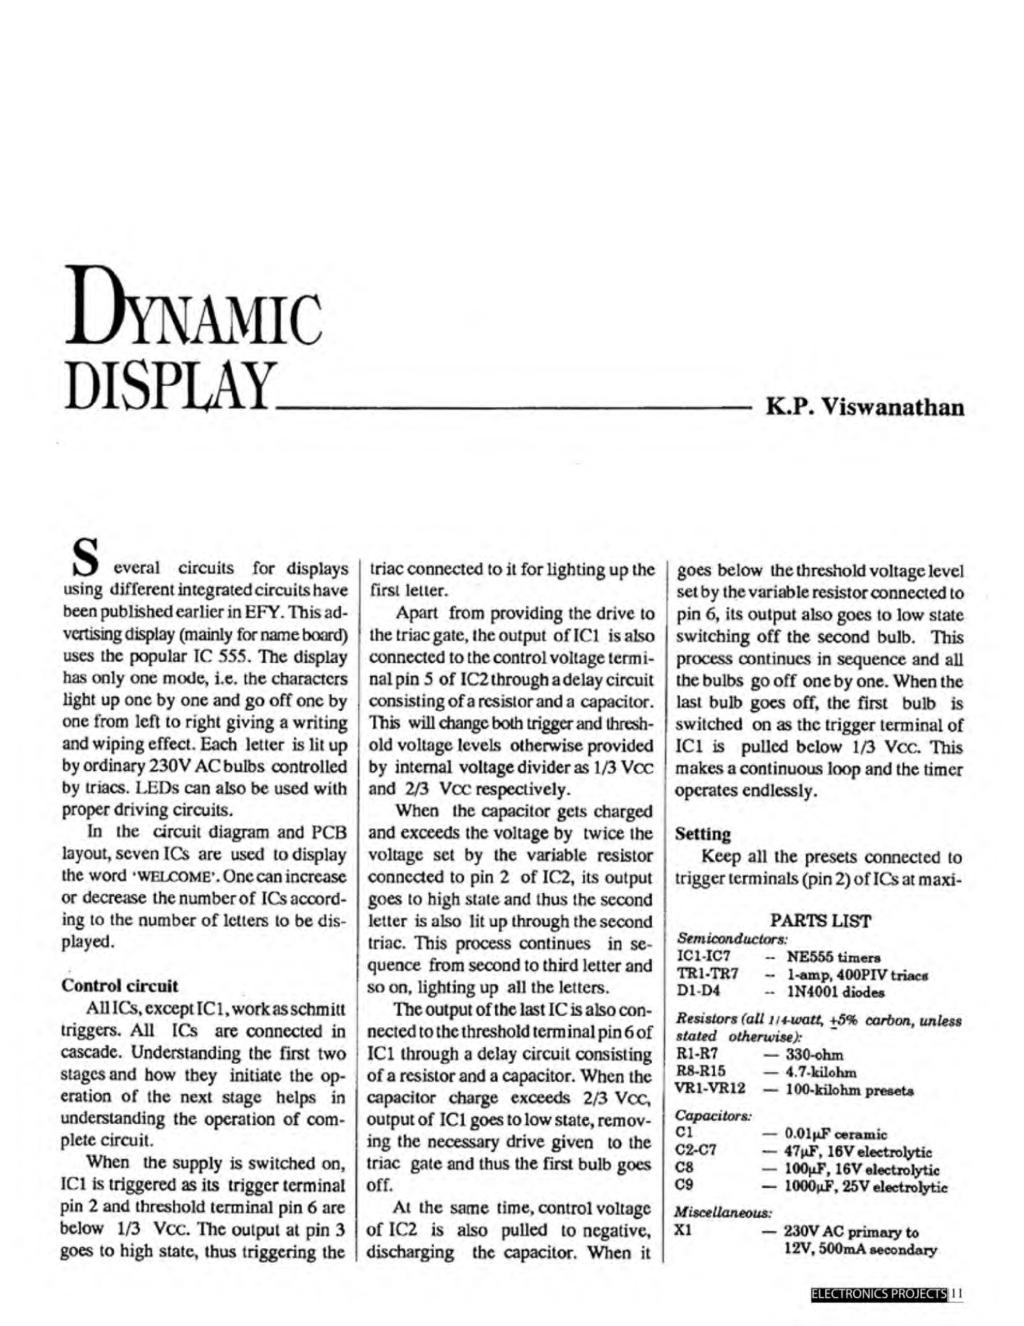 A Compilation Of 102 And Circuit Ideas For Construction Projects 555 Timer Bistable Multivibrator Technology Hacking Dynamic Display Kp Viswanathan S Everal Circuits Displays Using Different Integrated Have Been Published